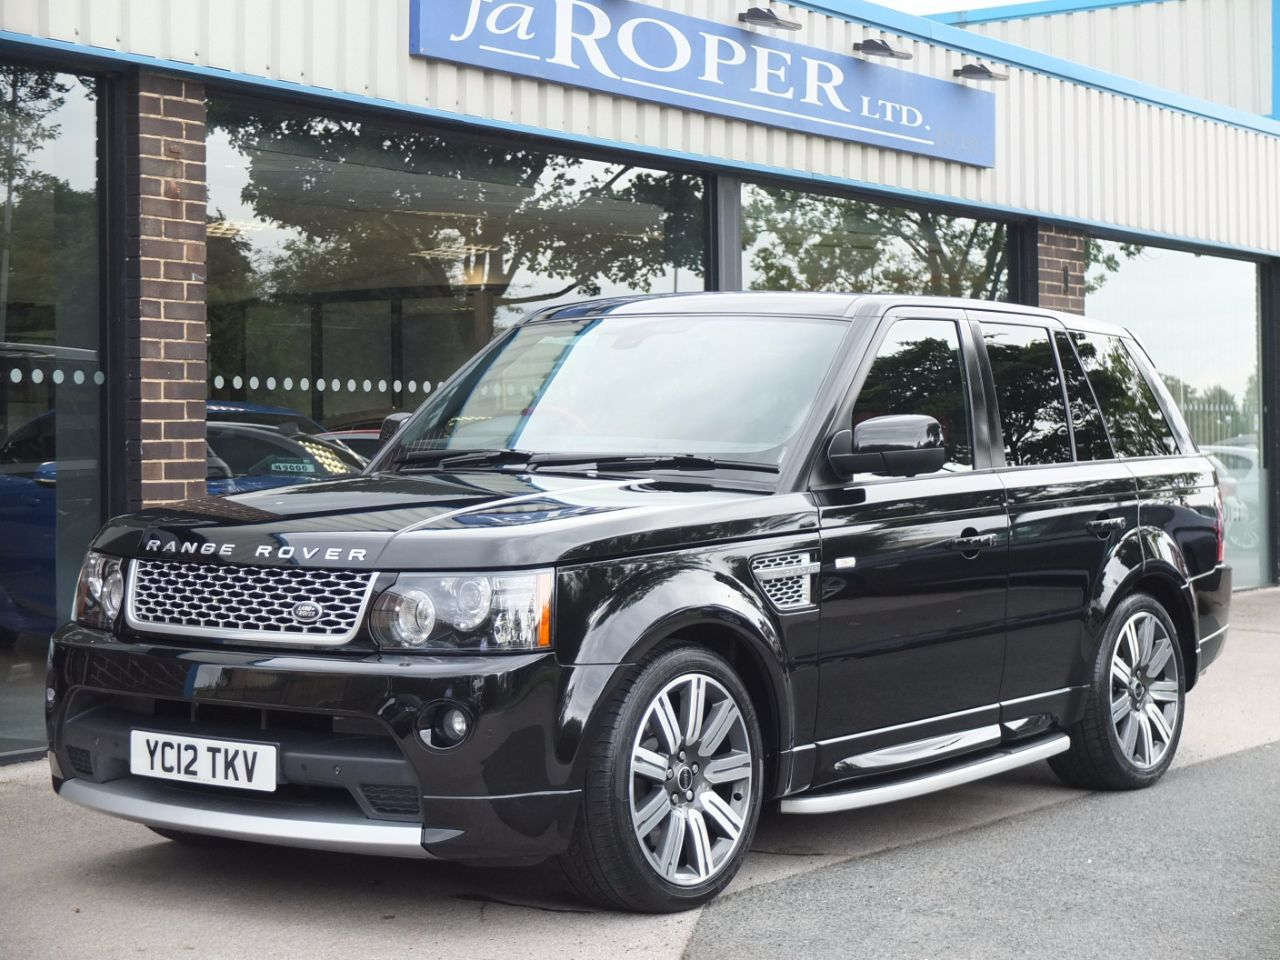 Land Rover Range Rover Sport 3.0 SDV6 Autobiography Sport Auto (Rear Media) Estate Diesel Santorini BlackLand Rover Range Rover Sport 3.0 SDV6 Autobiography Sport Auto (Rear Media) Estate Diesel Santorini Black at fa Roper Ltd Bradford